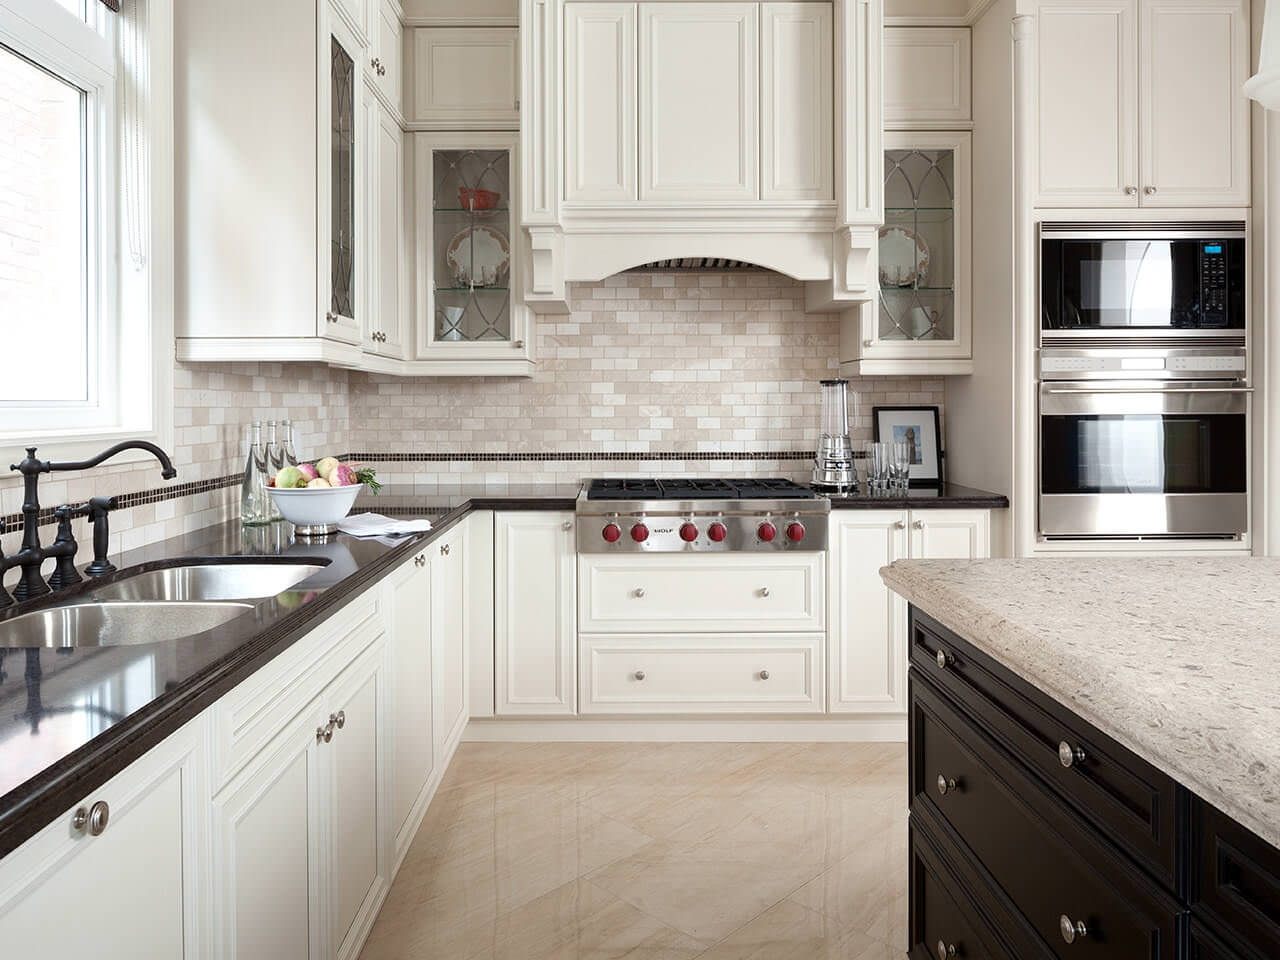 What is Cambria Quartz Countertops? Get Cost, Colors, Facts